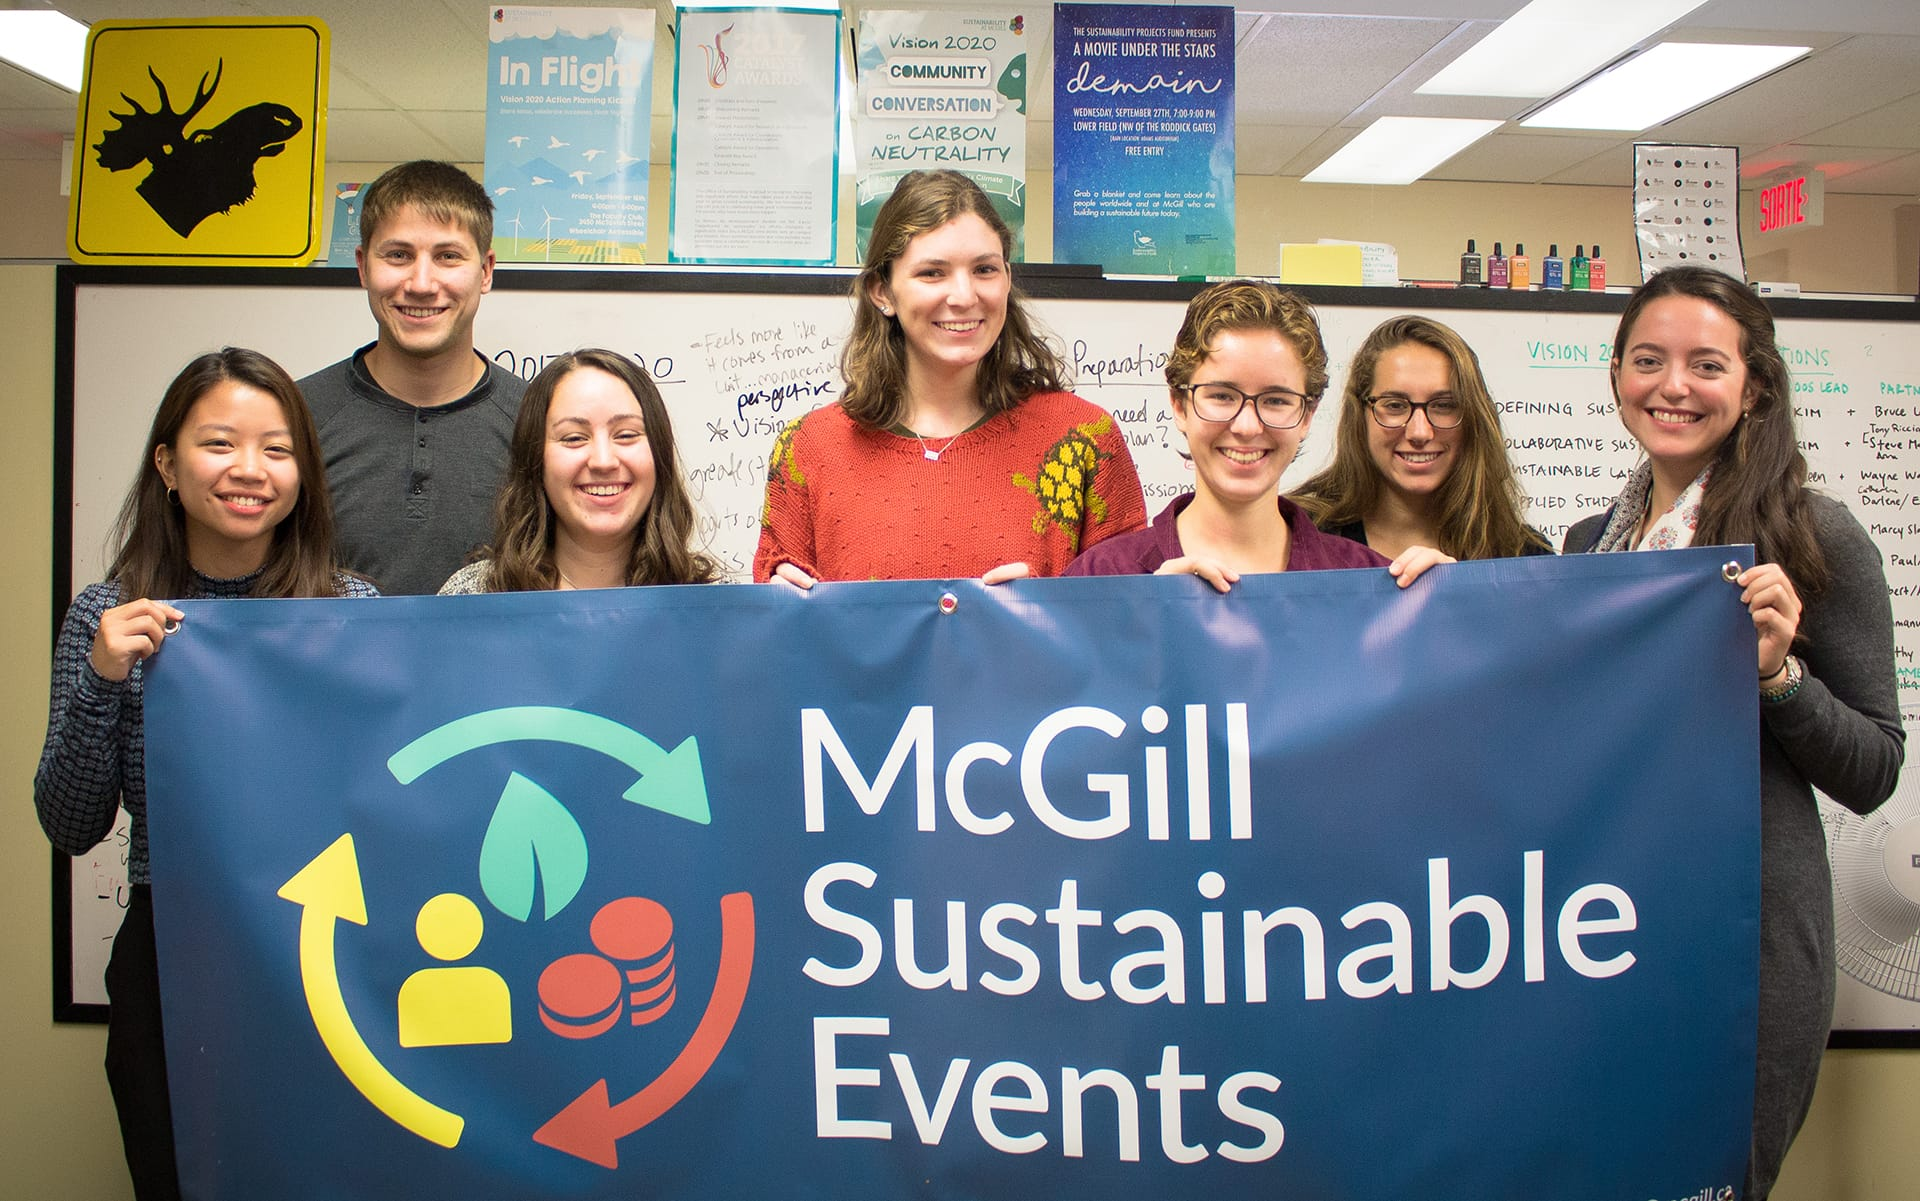 McGill Sustainable Events team.